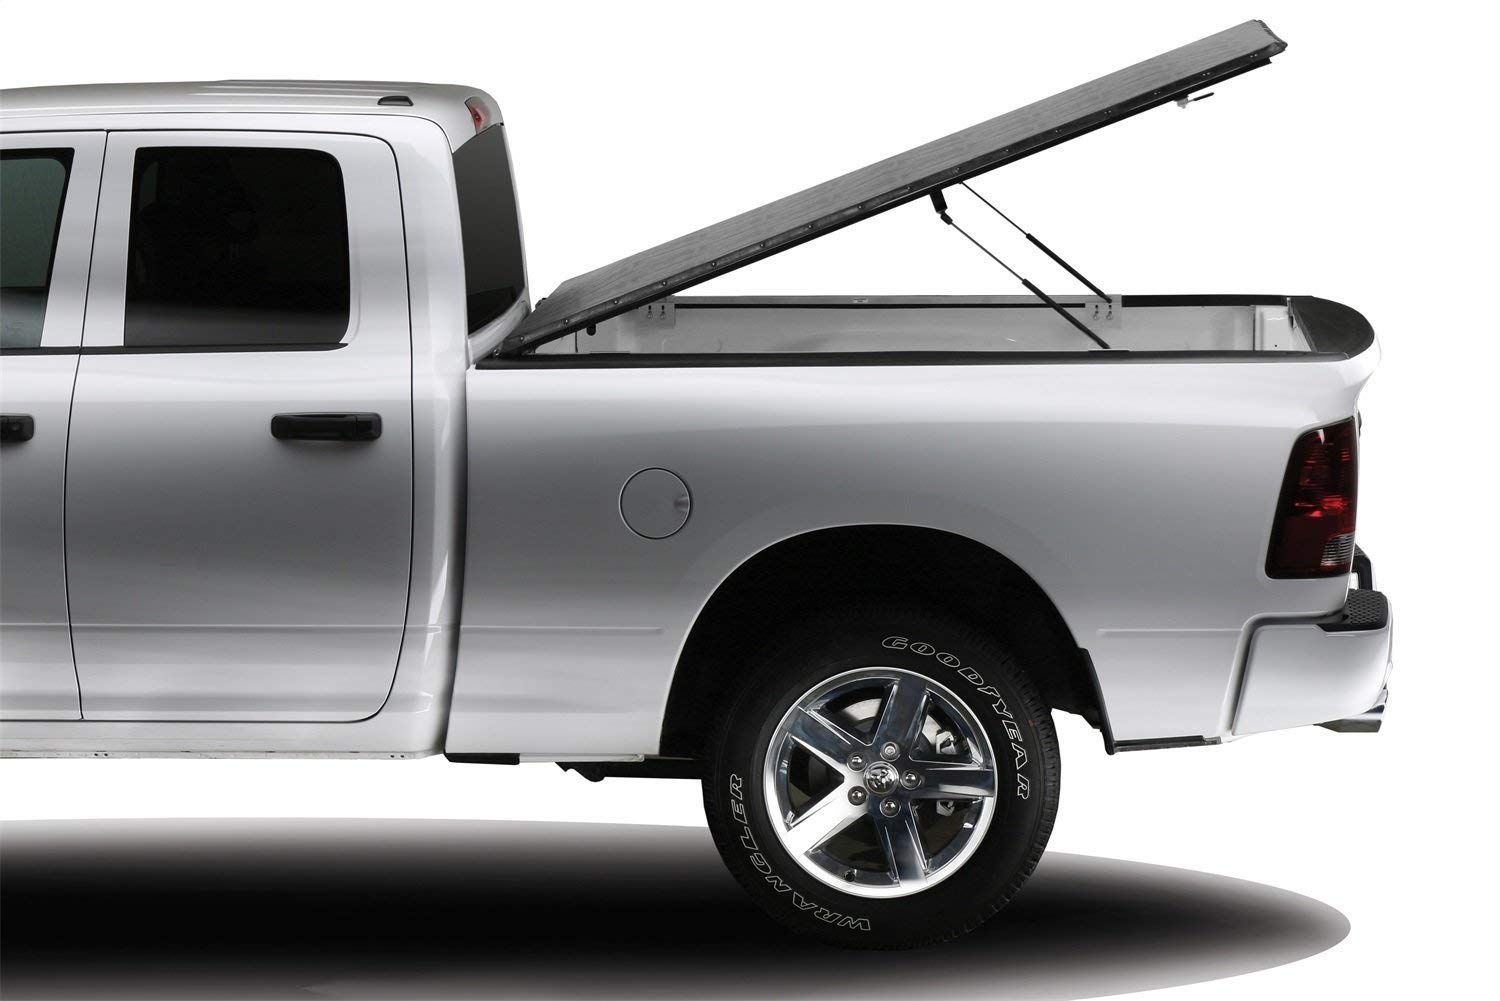 Extang Full Tilt Truck Bed Tonneau Cover Fits Toyota Tundra Lb 8 Ft 07 13 Works With Without Rail System